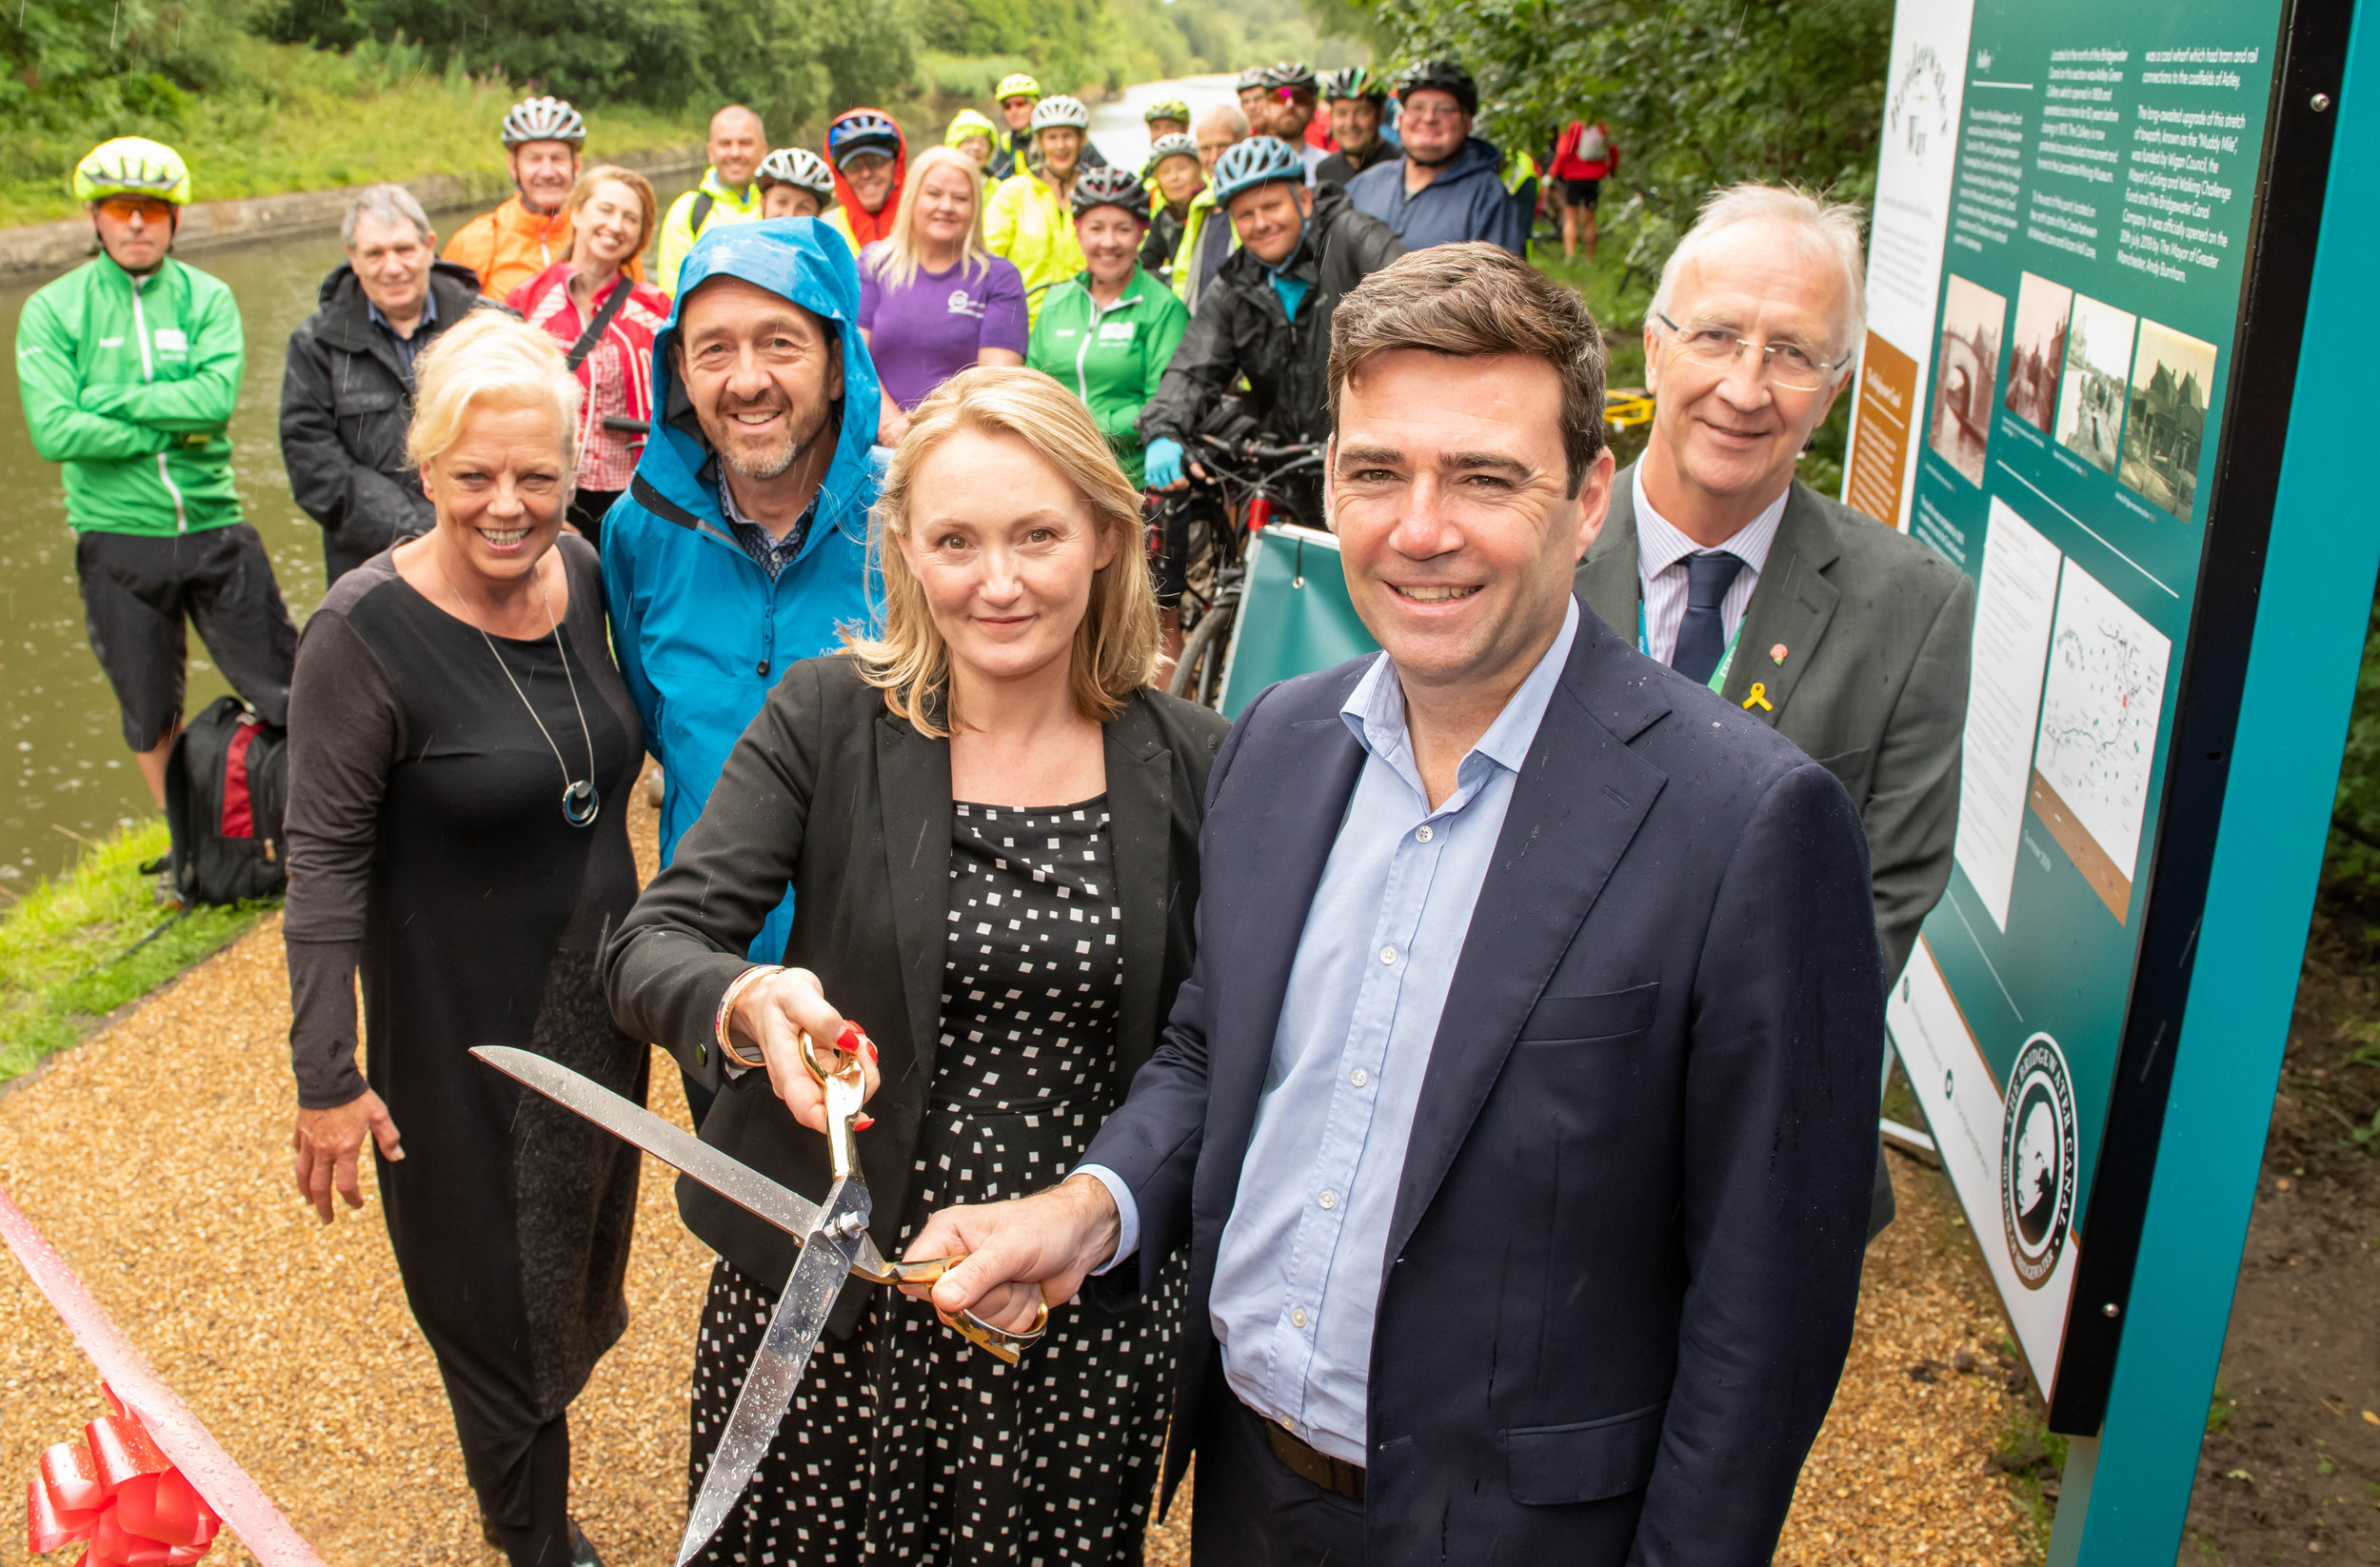 Ribbon cutting ceremony with (L-R): Louise Morrissey (Peel L&P), Chris Boardman (Cycling and Walking Commissioner), Jo Platt MP for Leigh, Andy Burnham (Greater Manchester Mayor) and Leader of Wigan Council, Cllr David Molyneux.